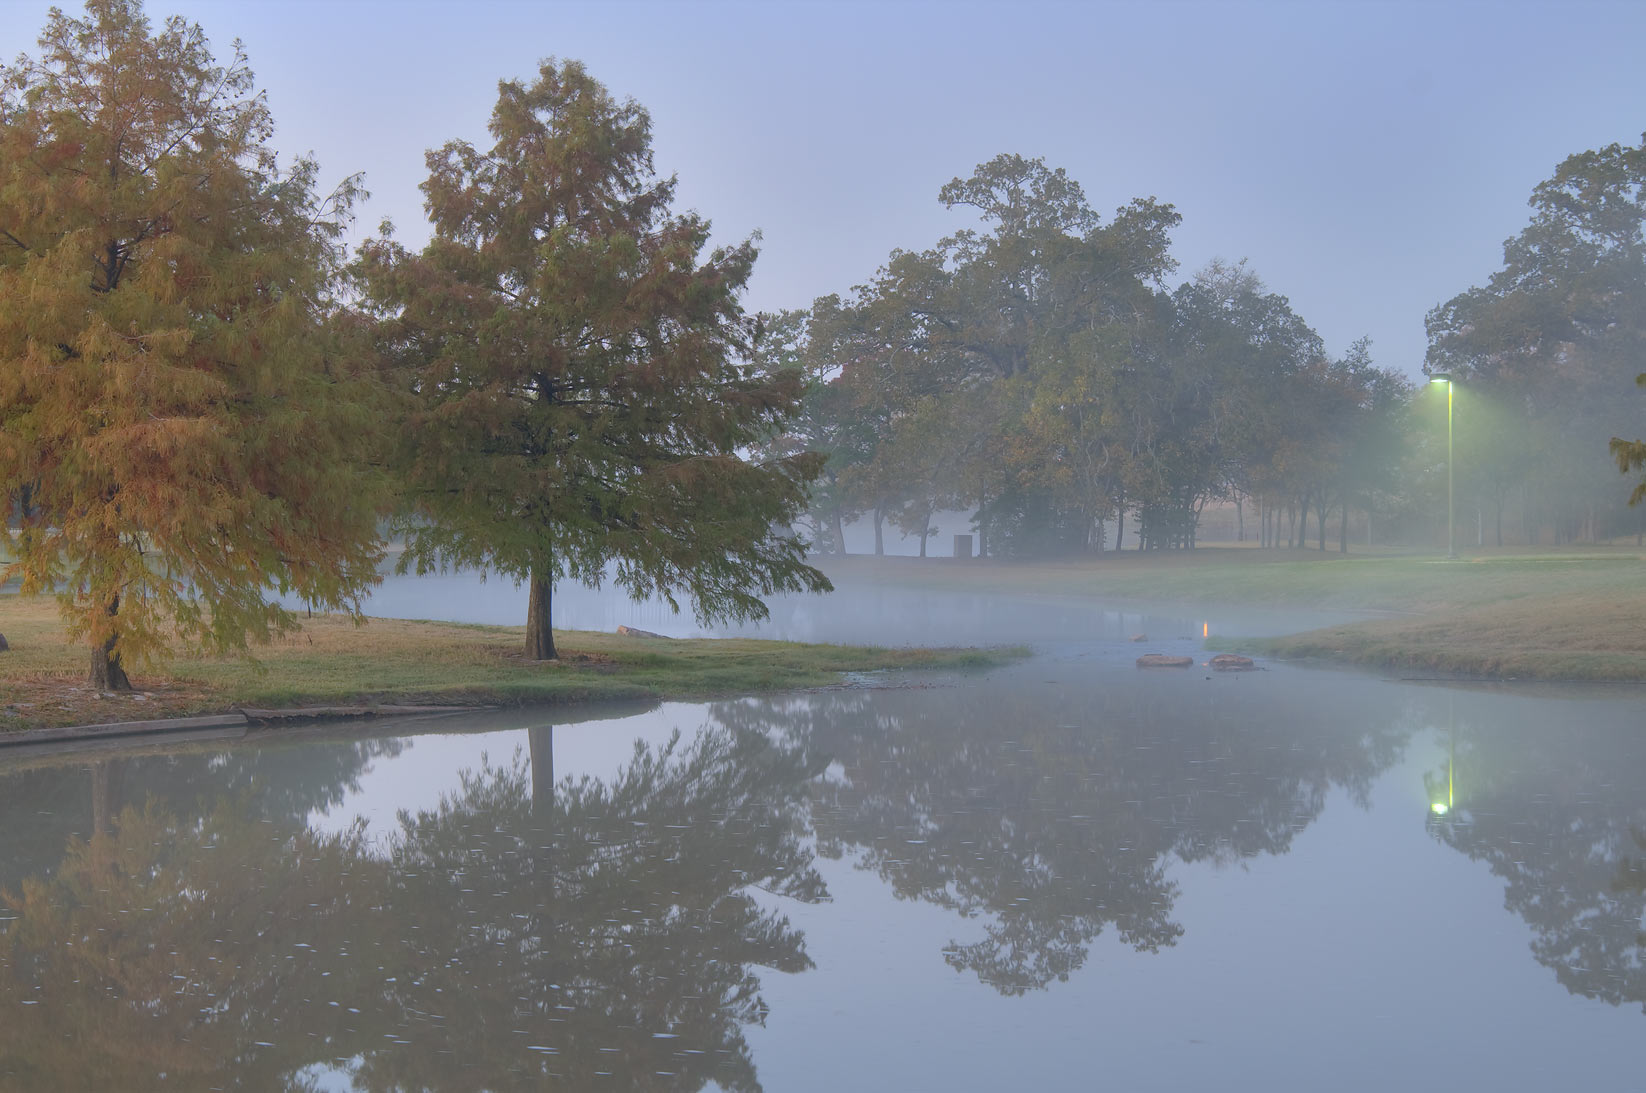 Pond of Research Park in fog on campus of Texas A&M University. College Station, Texas